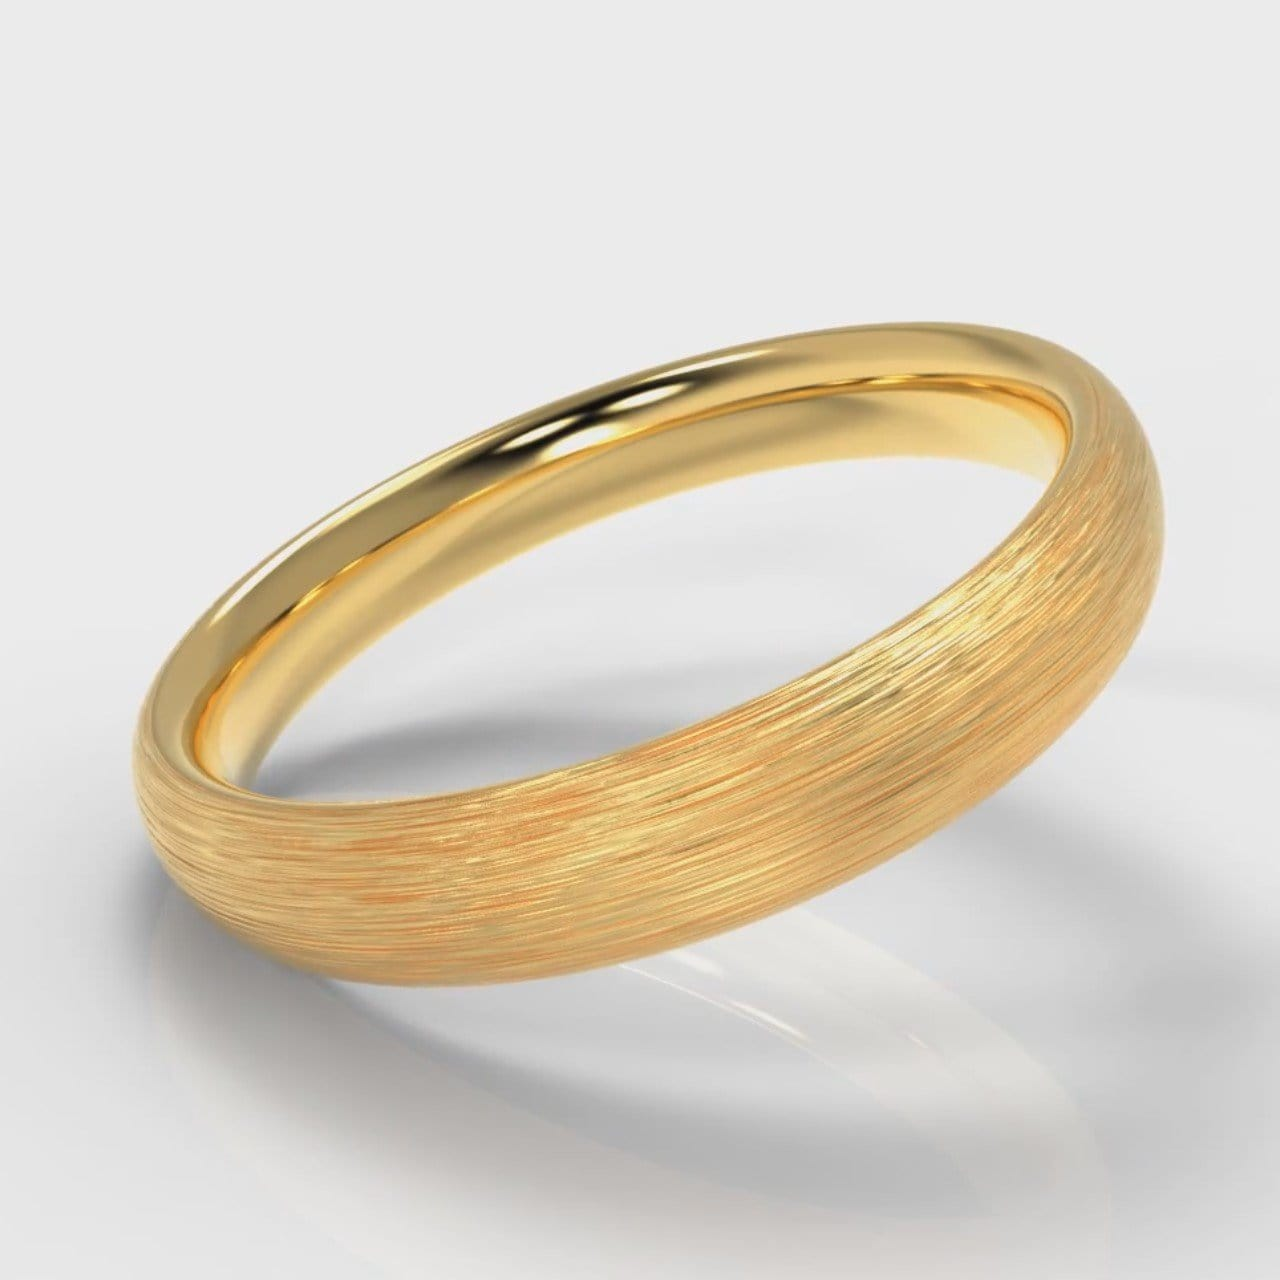 4mm Court Shaped Comfort Fit Brushed Wedding Ring - Yellow Gold